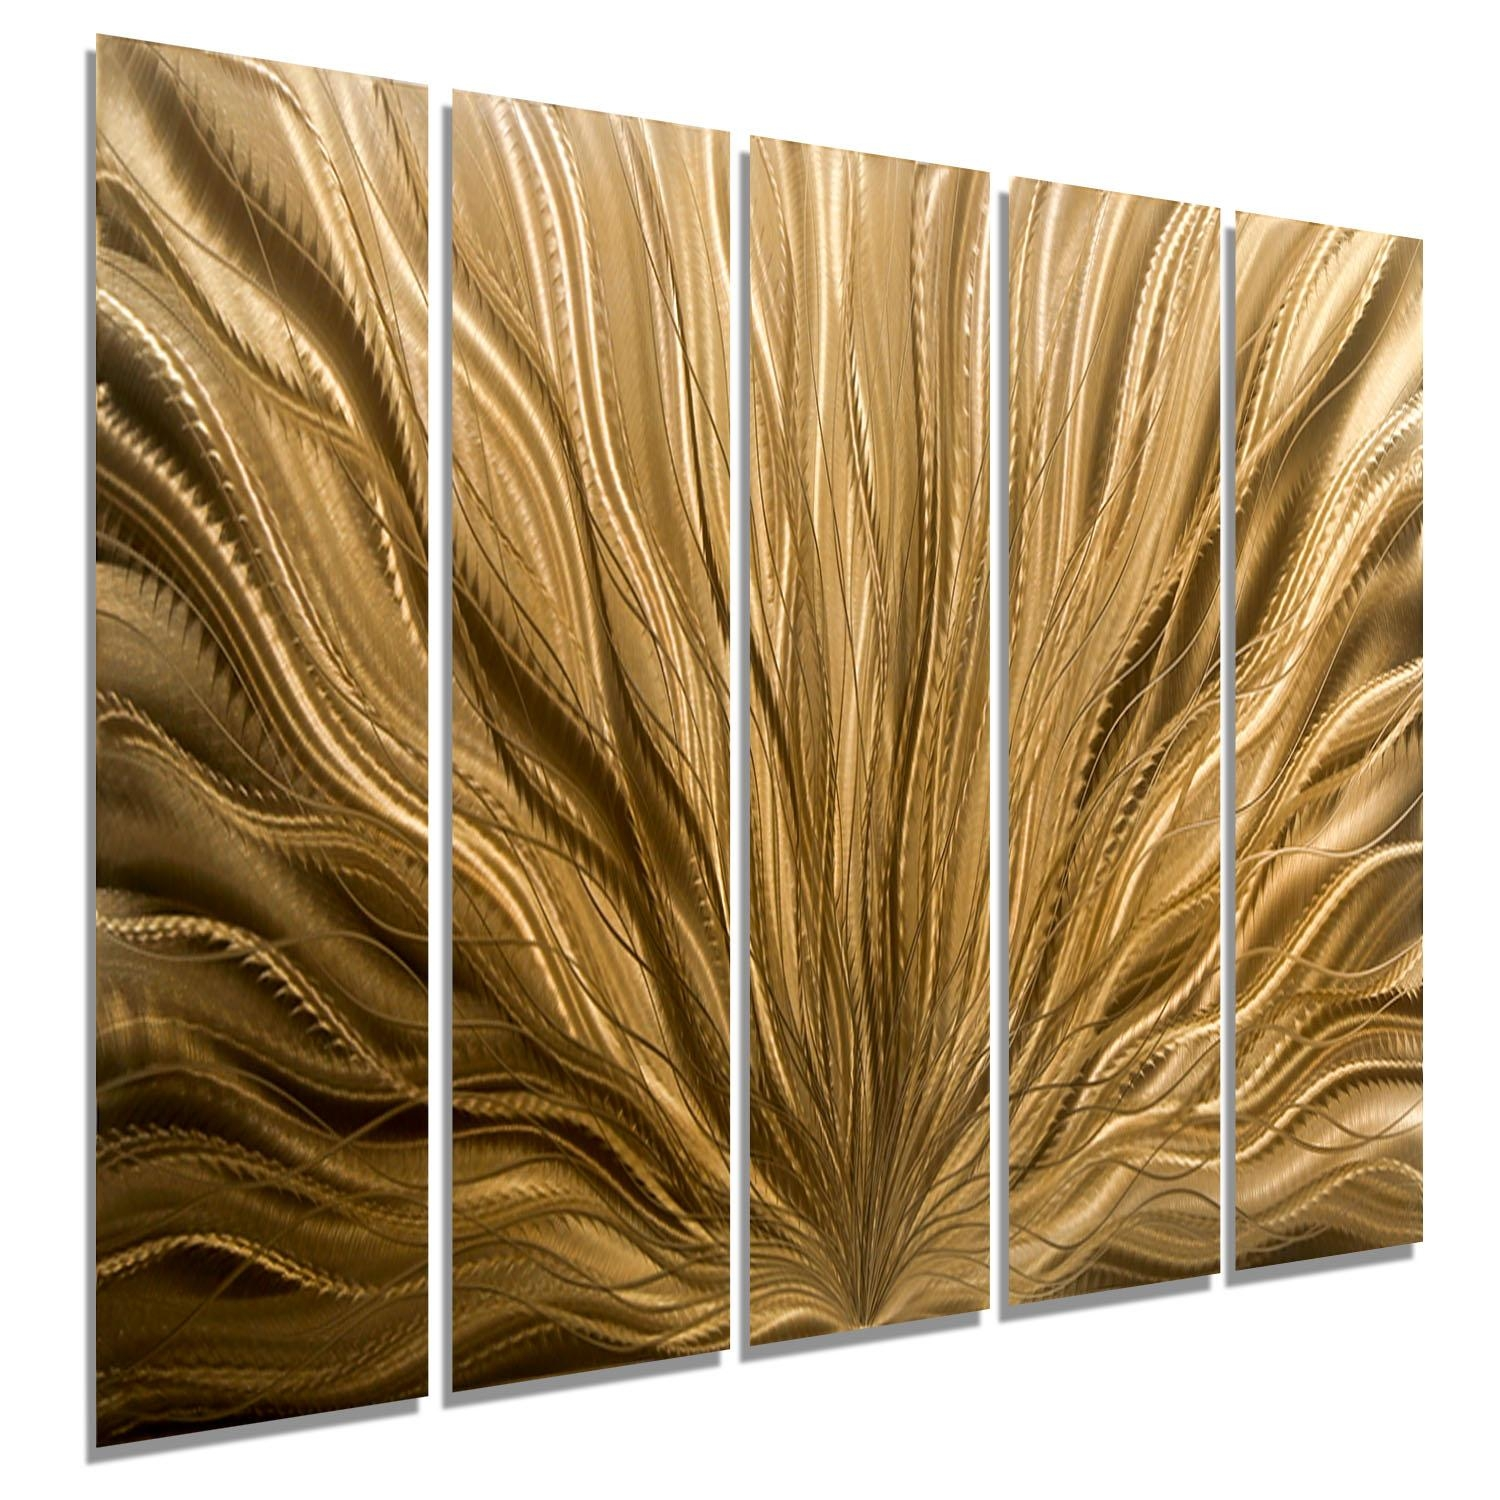 Copper Plumage Epic – Extra Large Light Copper Abstract Metal Wall Inside Large Copper Wall Art (Image 4 of 20)